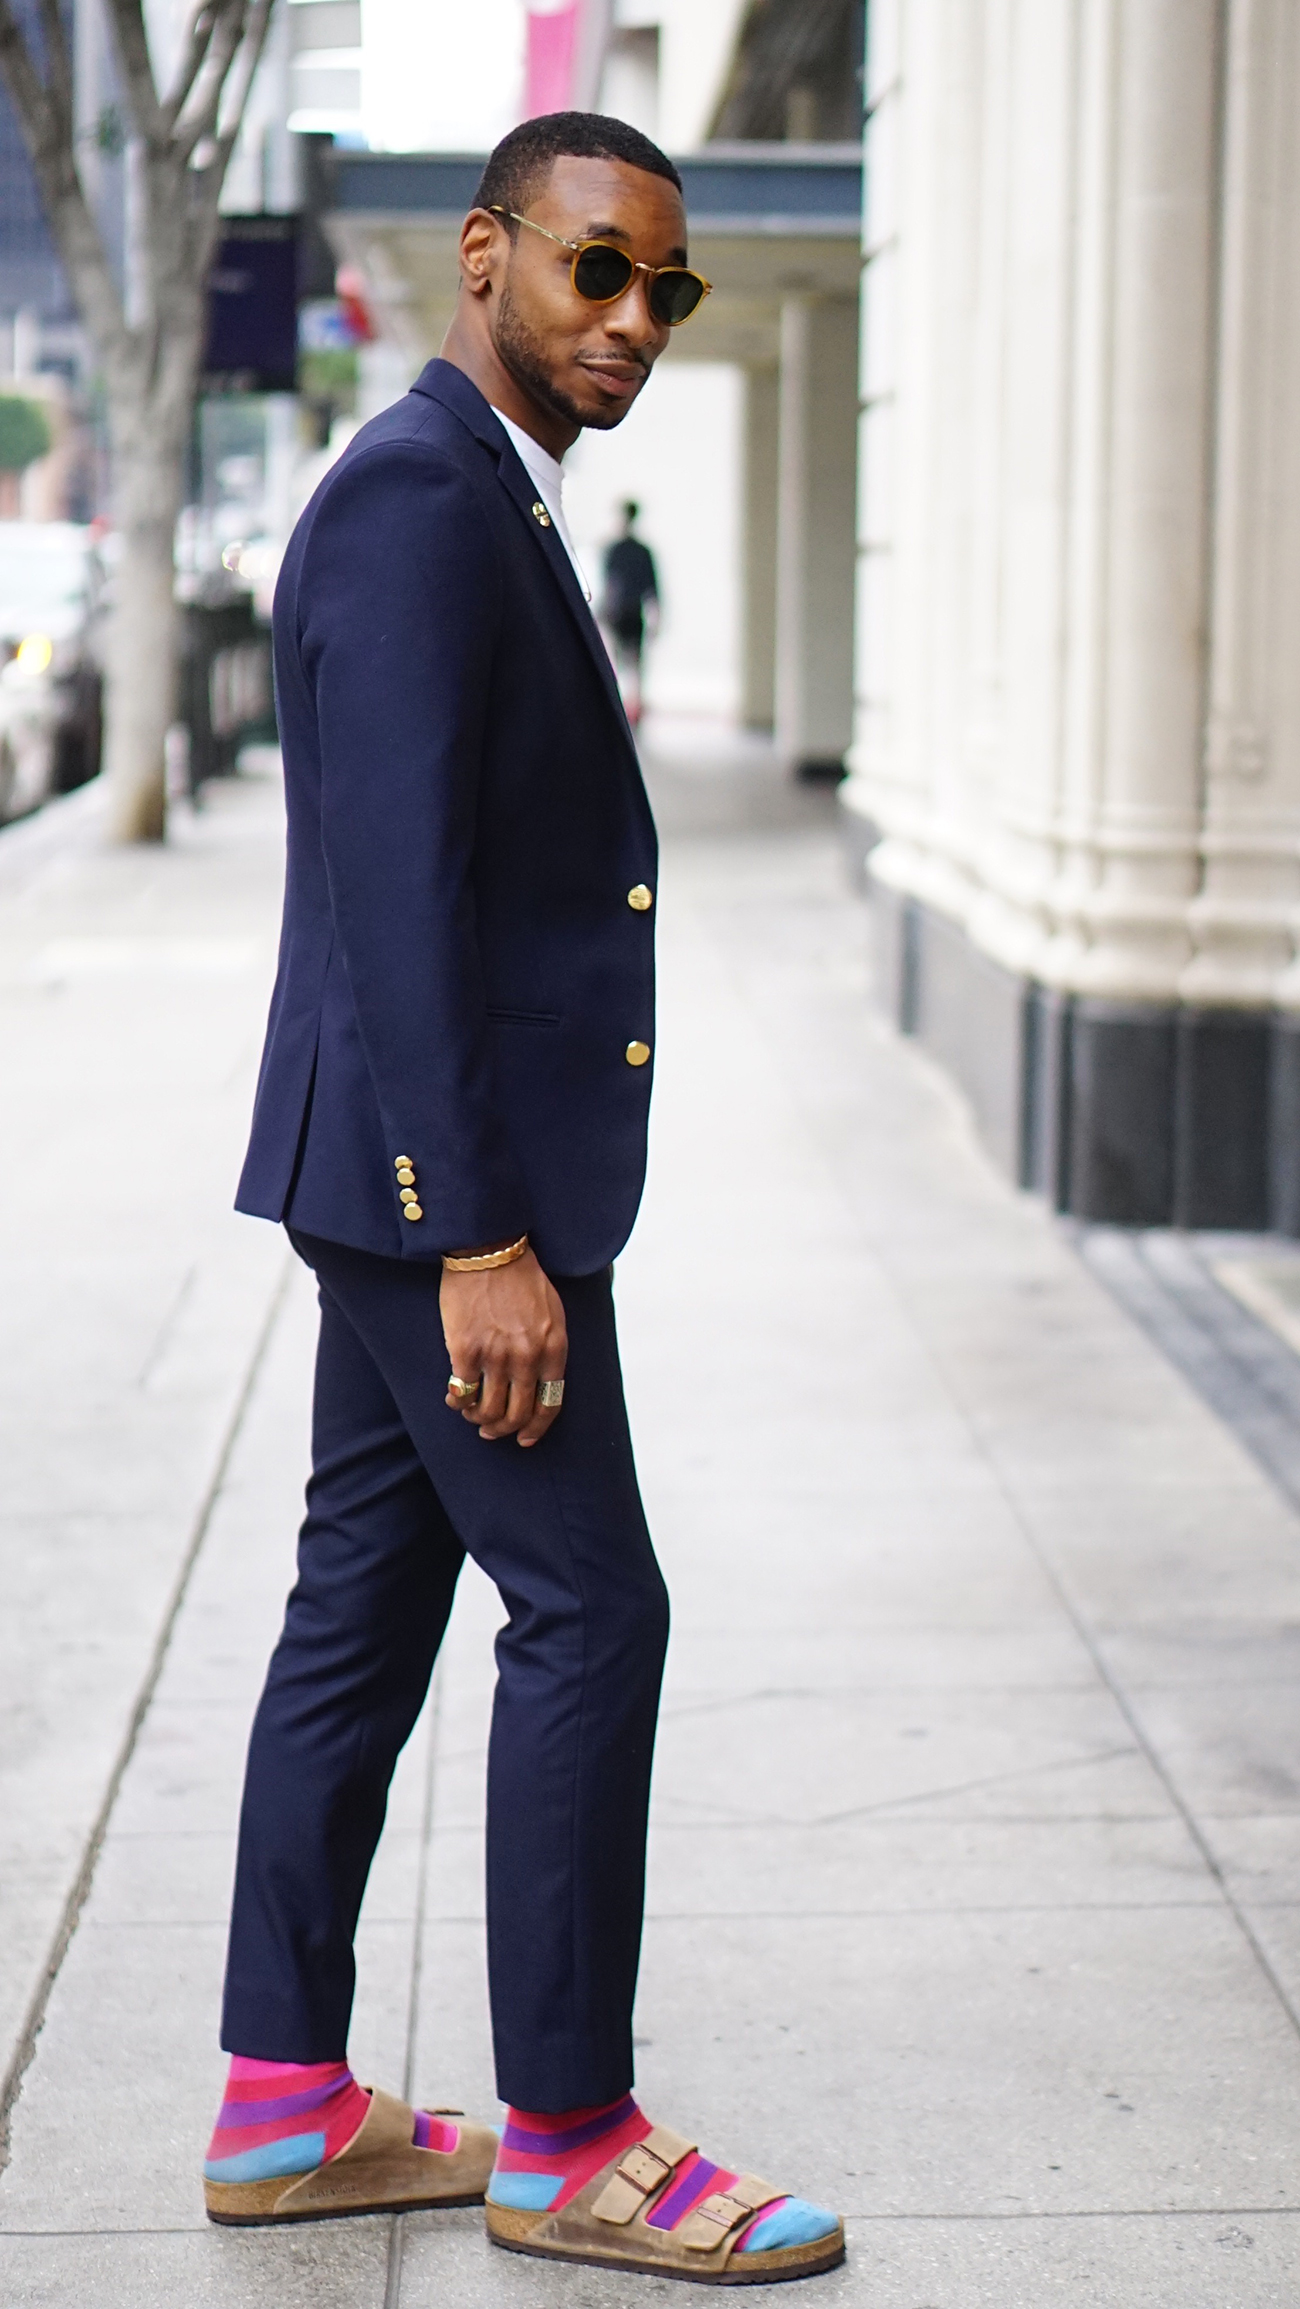 Buy Men wearing style: sandals with socks picture trends